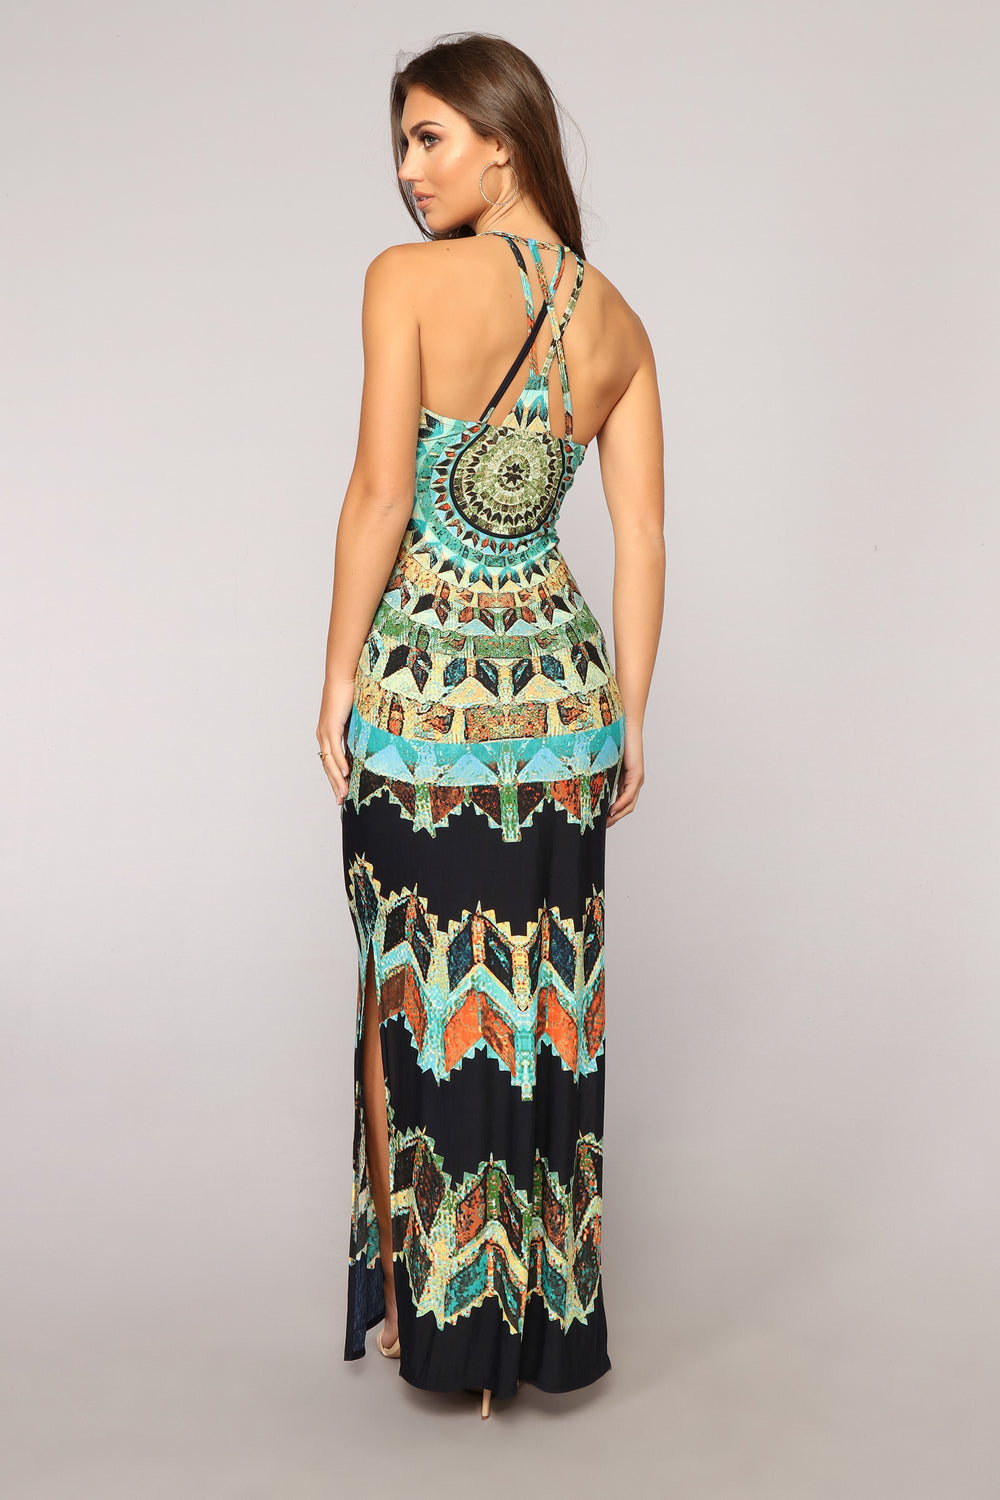 Mazatlan Maxi Dress - Navy